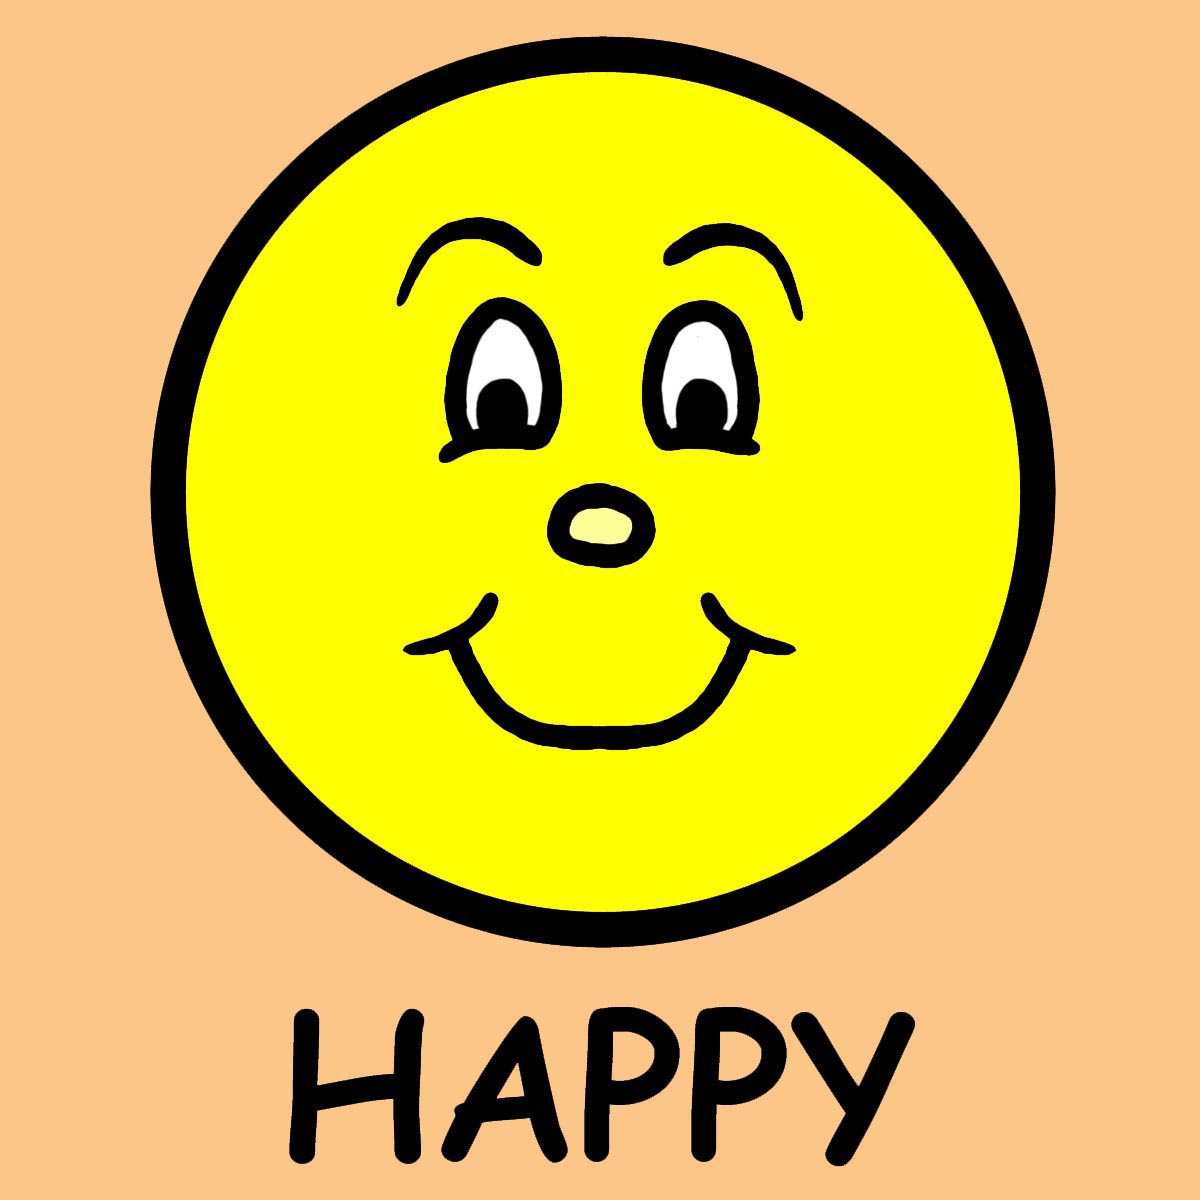 Happy Person Clipart | Clipart Panda - Free Clipart Images